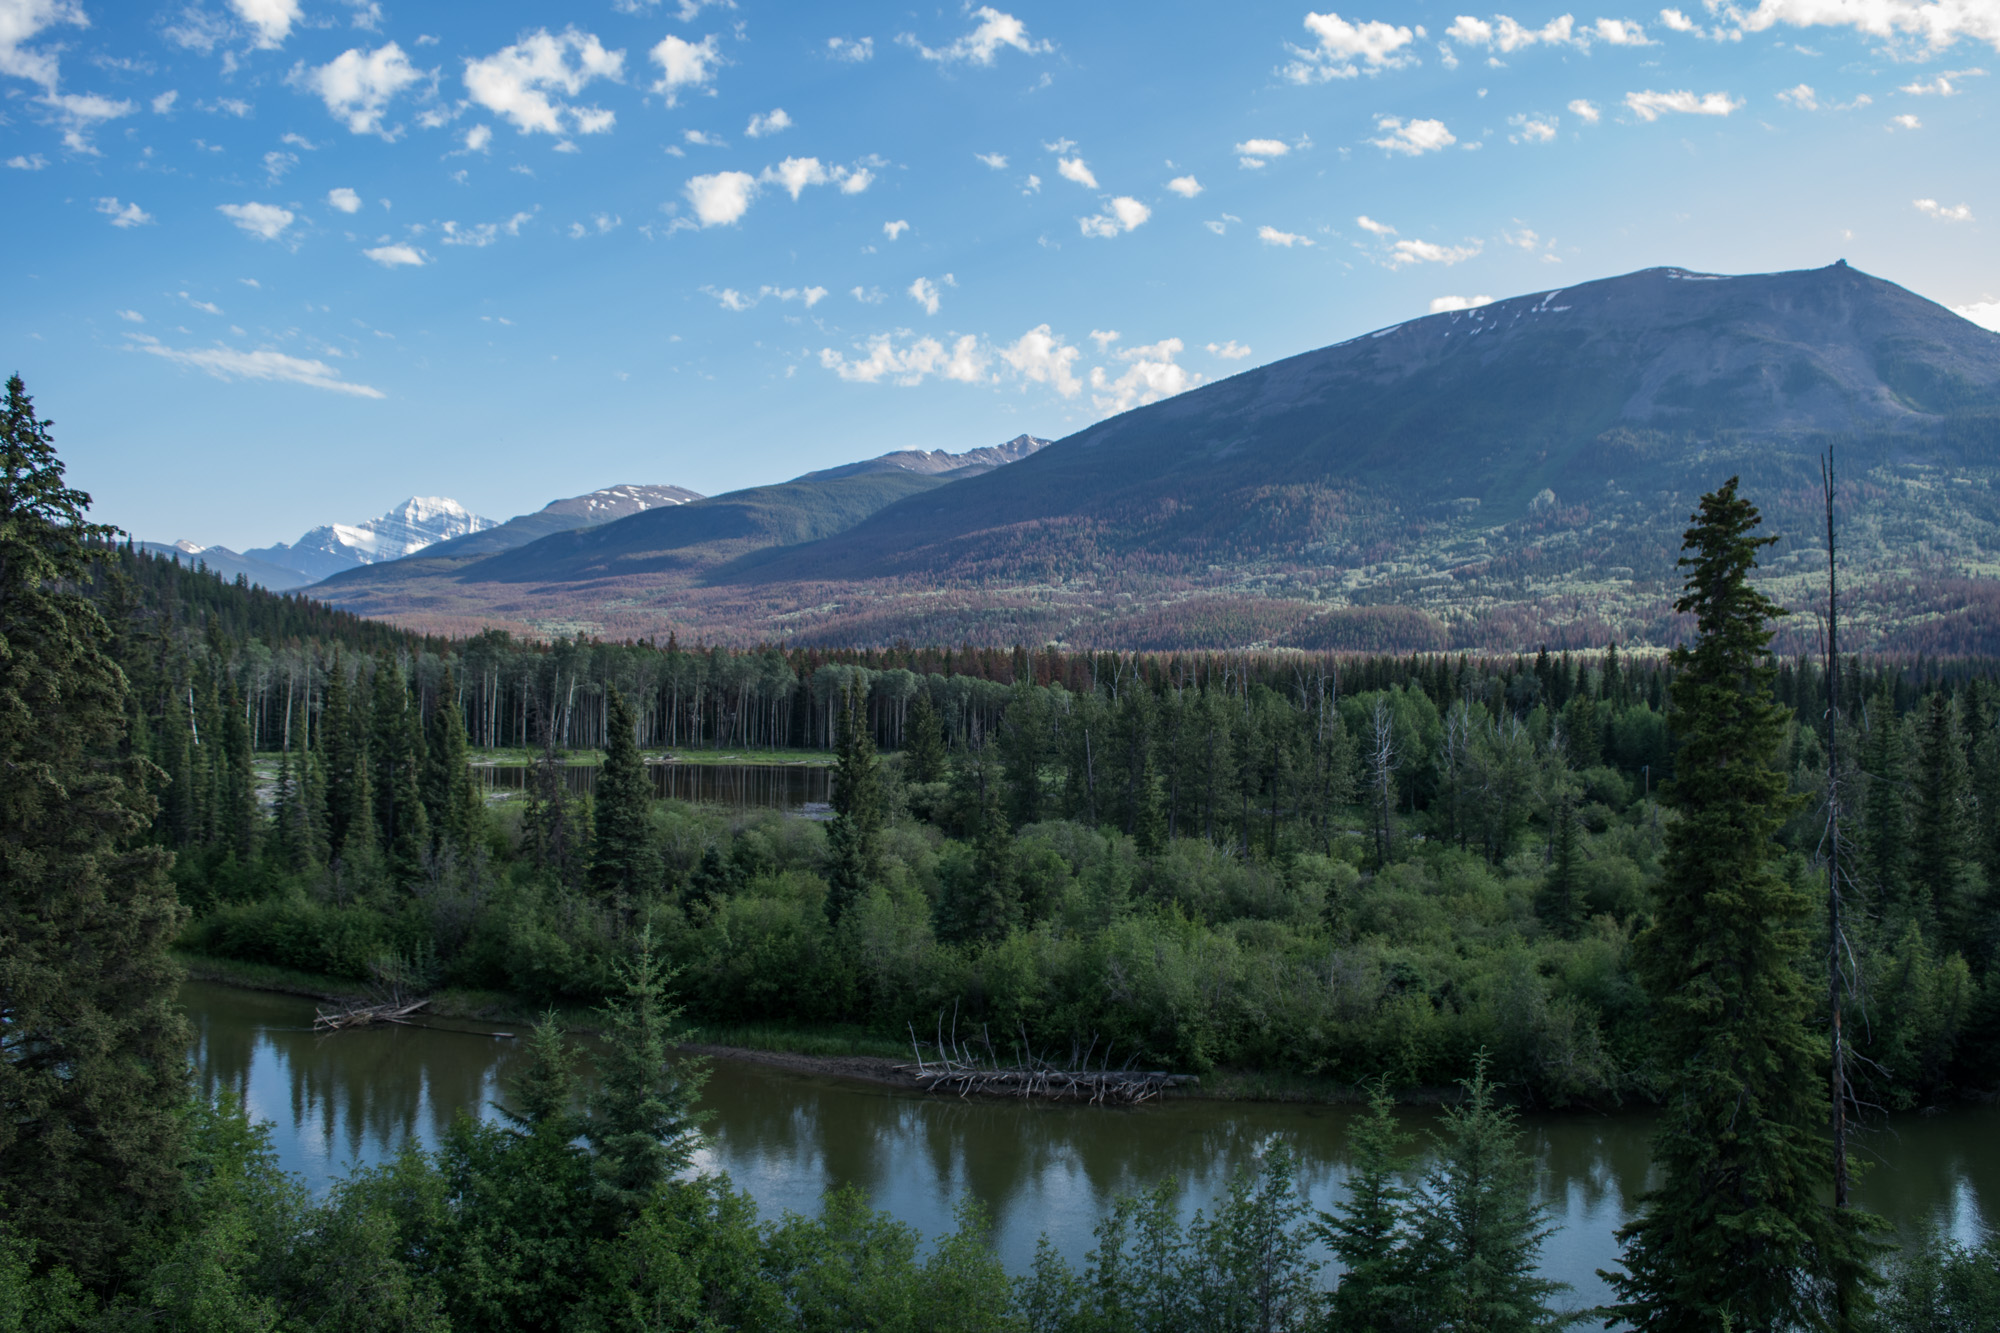 The Miette River running through the valley in Jasper National Park. In the background is the Trident Range of the Canadian Rocky Mountains.